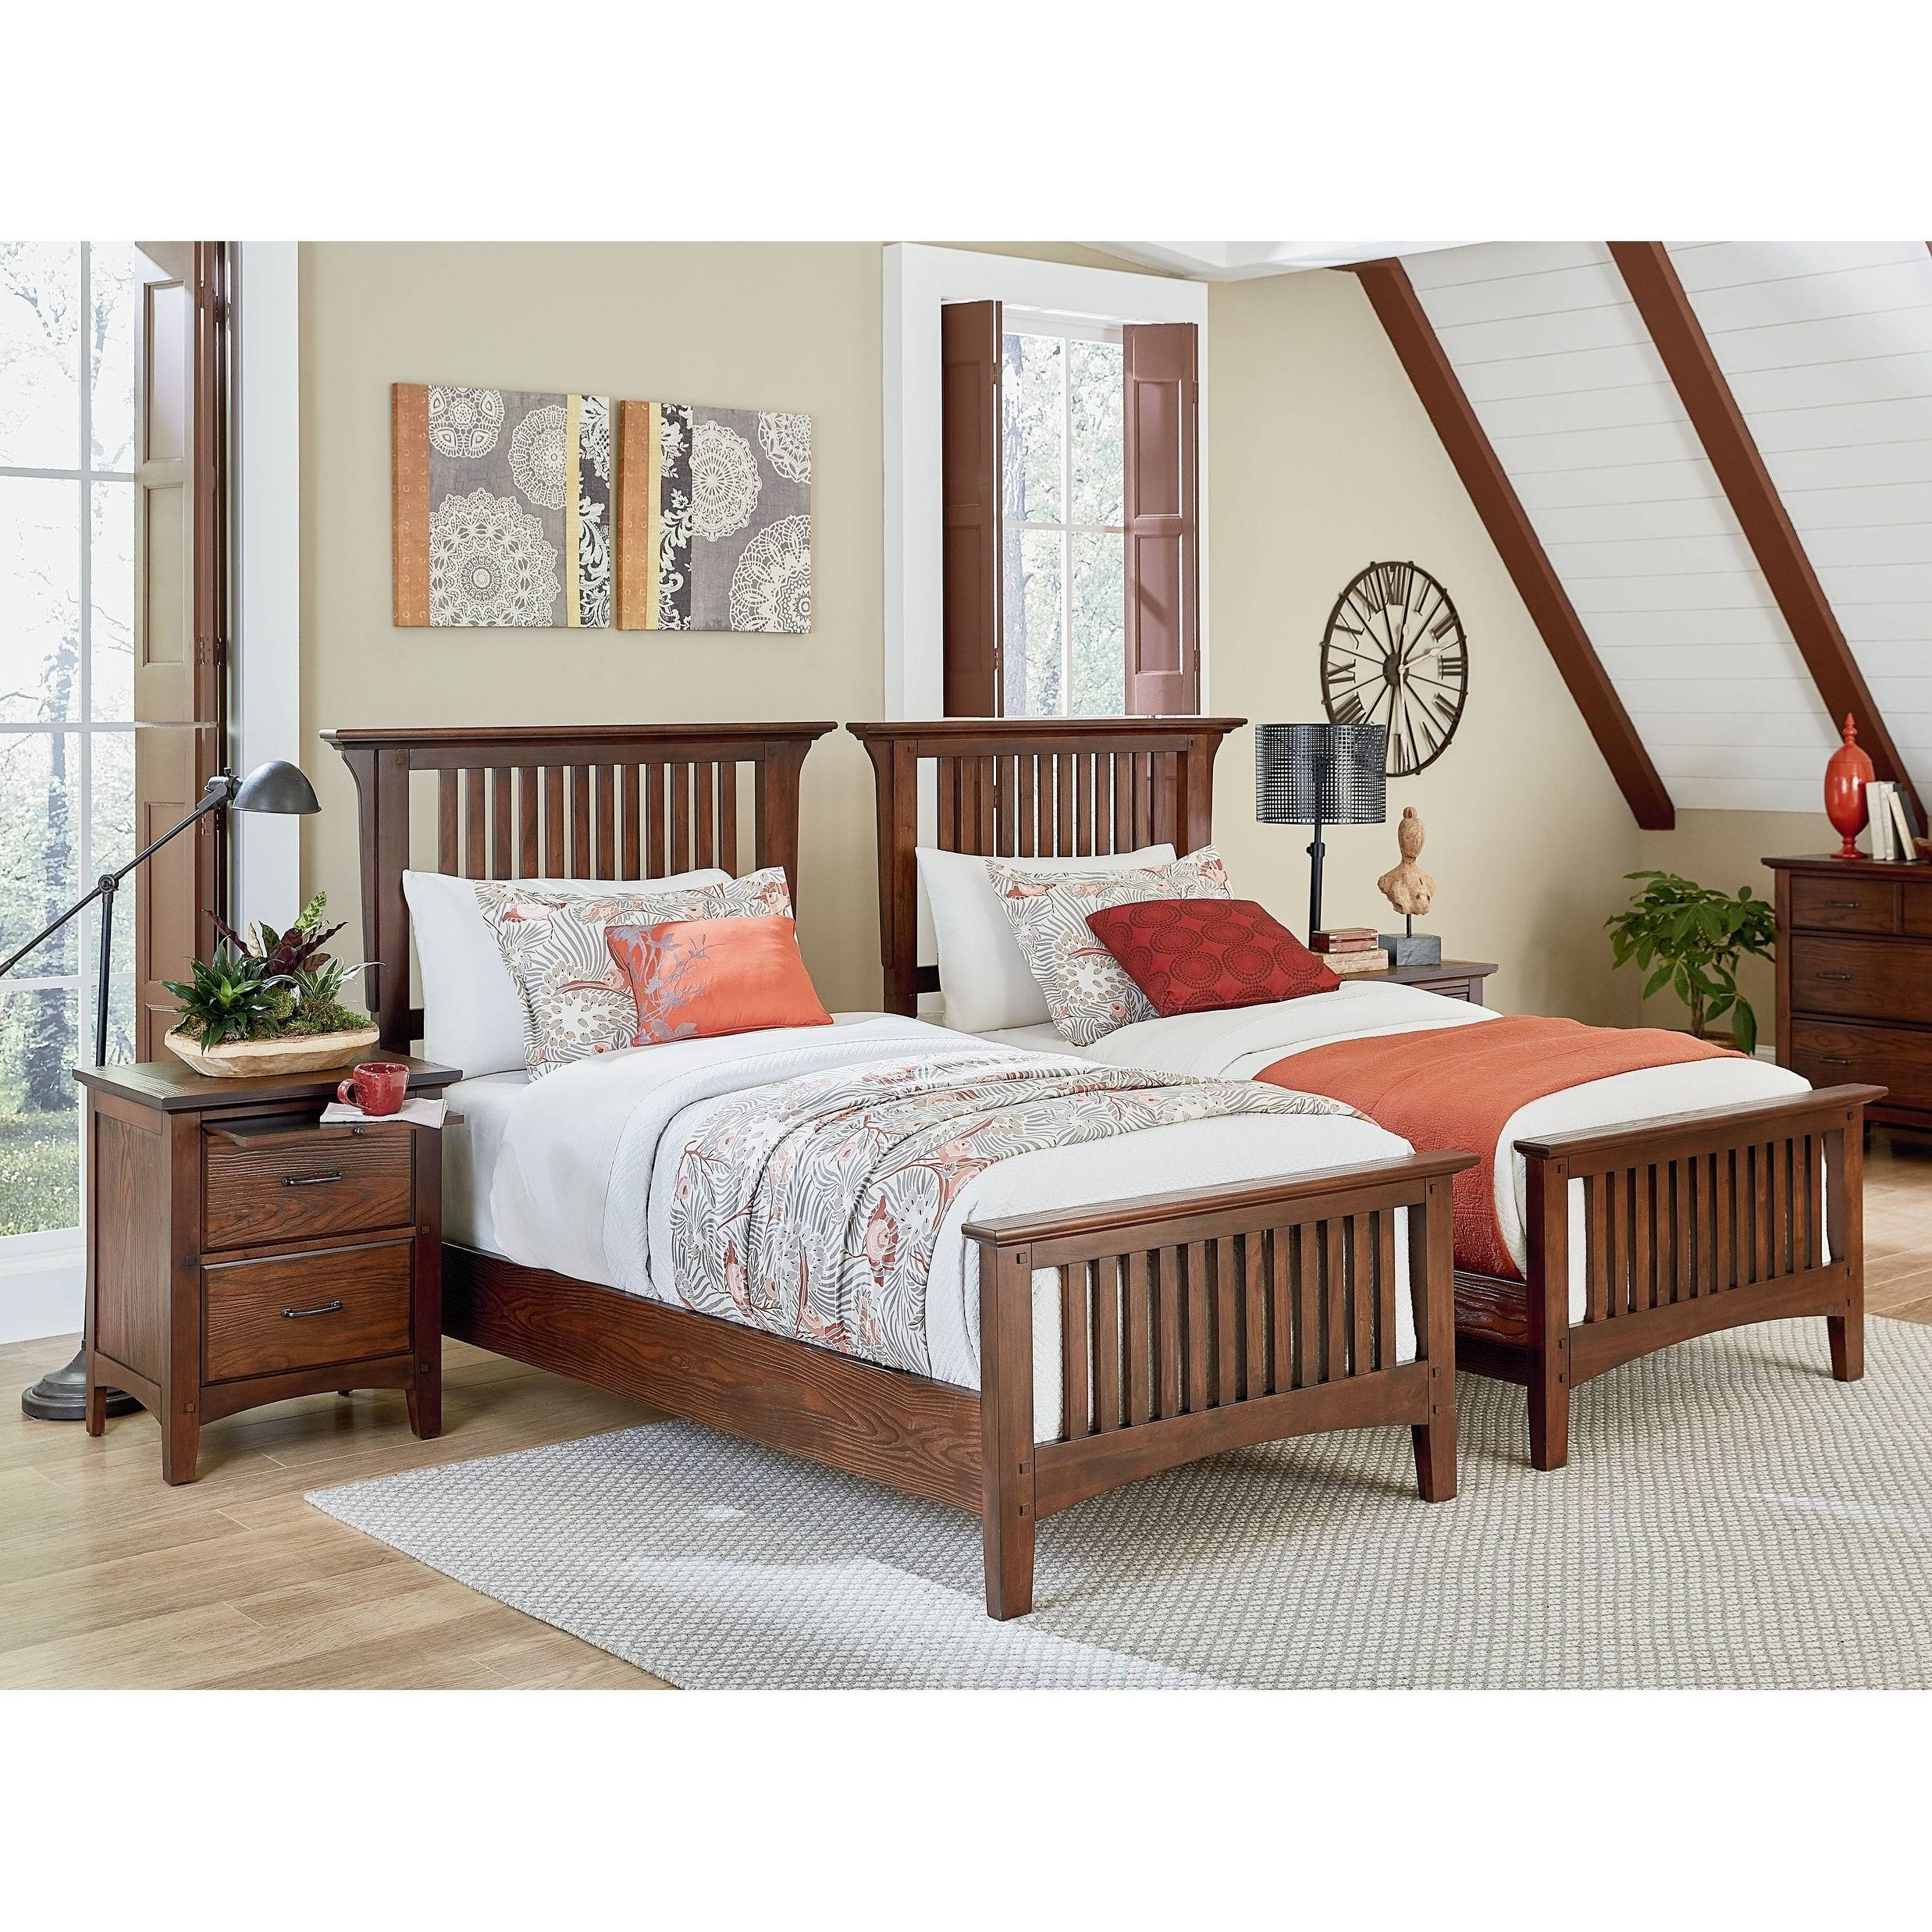 INSPIRED by Bassett Modern Mission Double Twin Bedroom Set with 2 Nightstands e739be70 31b8 43f9 b958 ec fab28